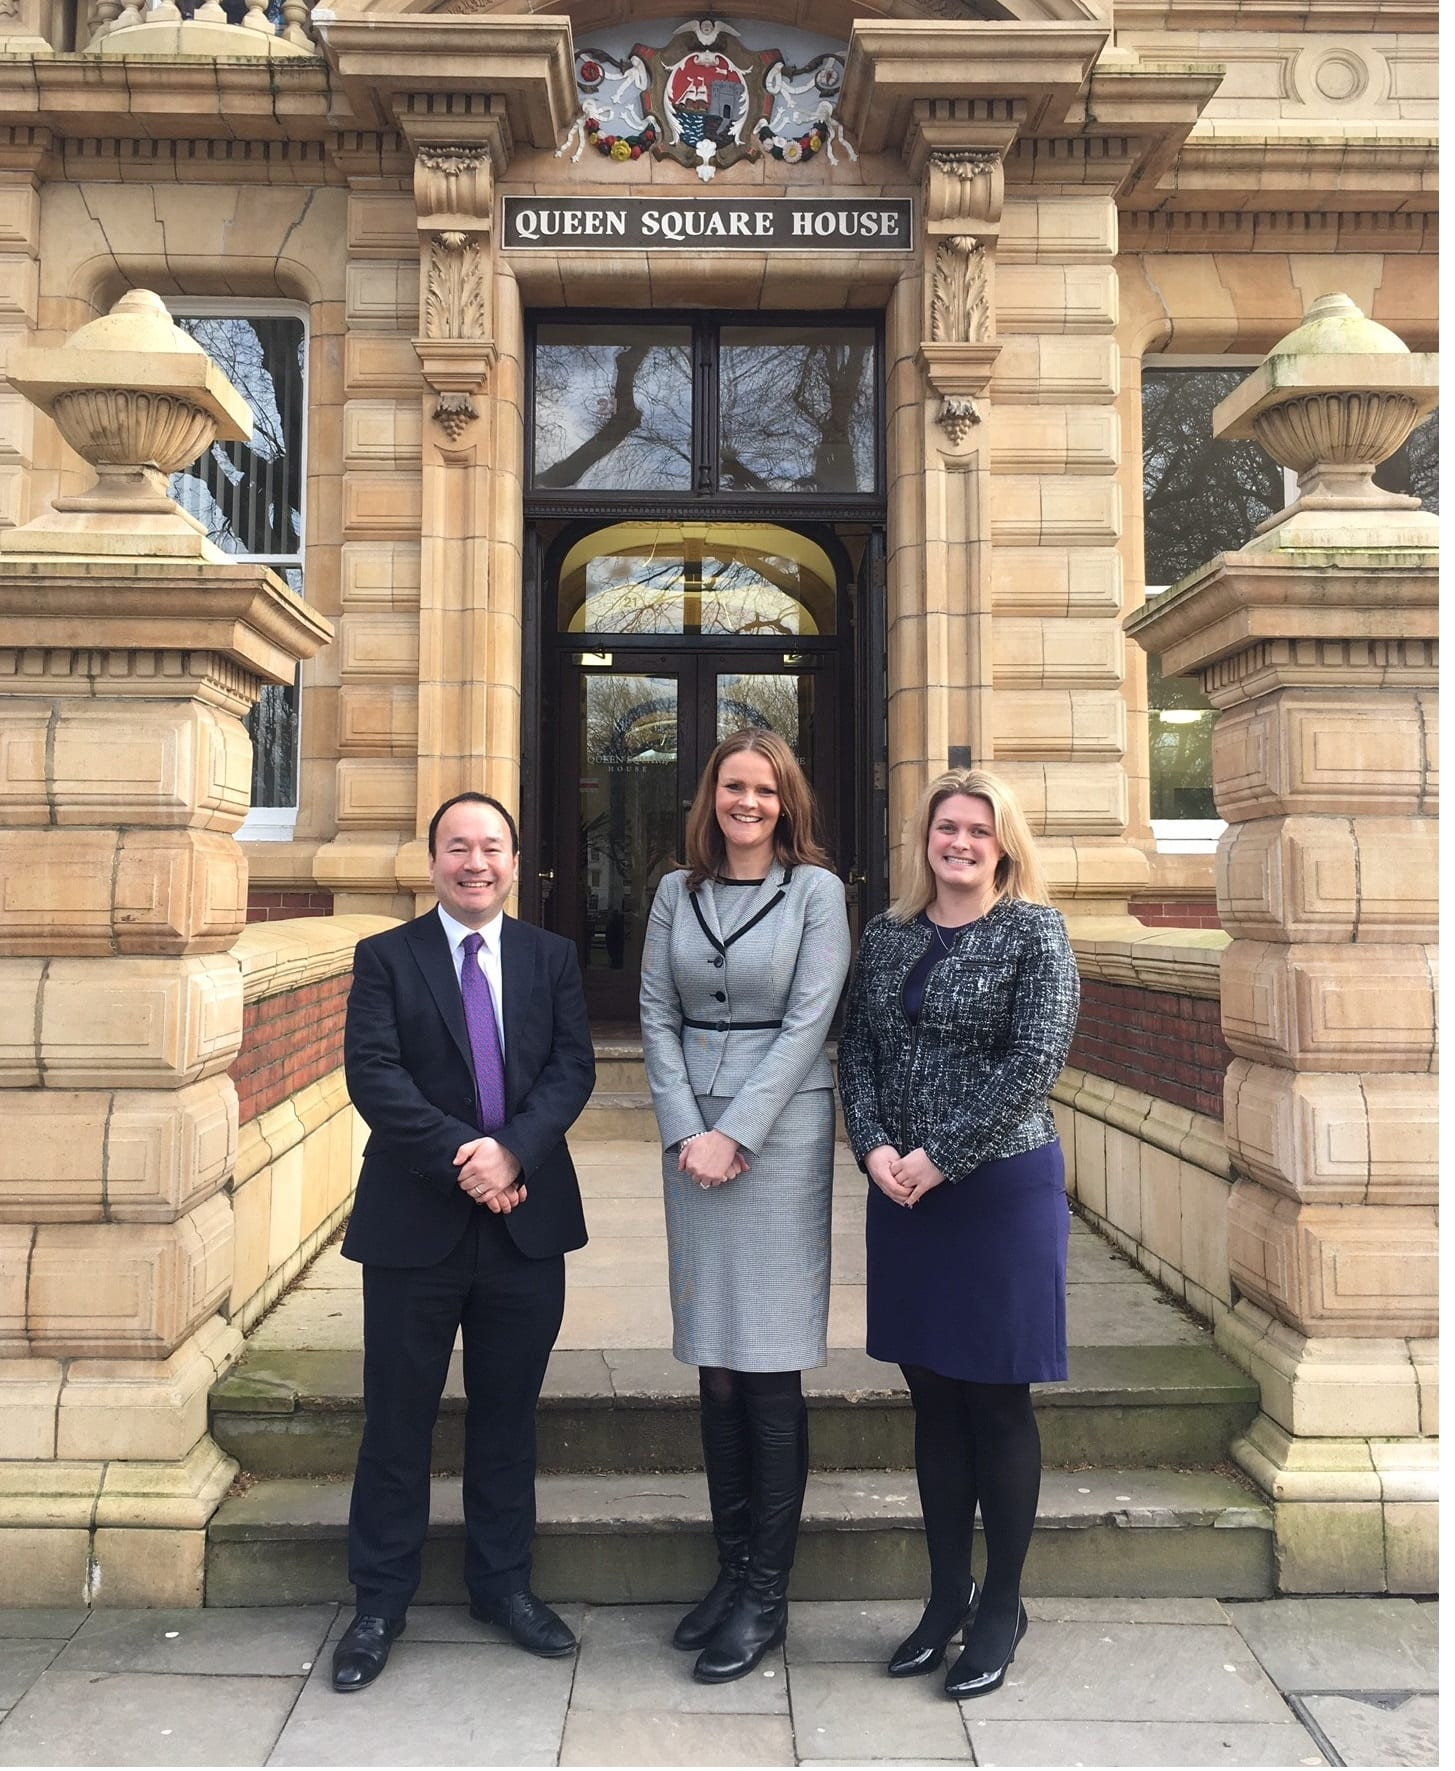 Family Law: Office Number 14 Opens Its Doors In Bristol